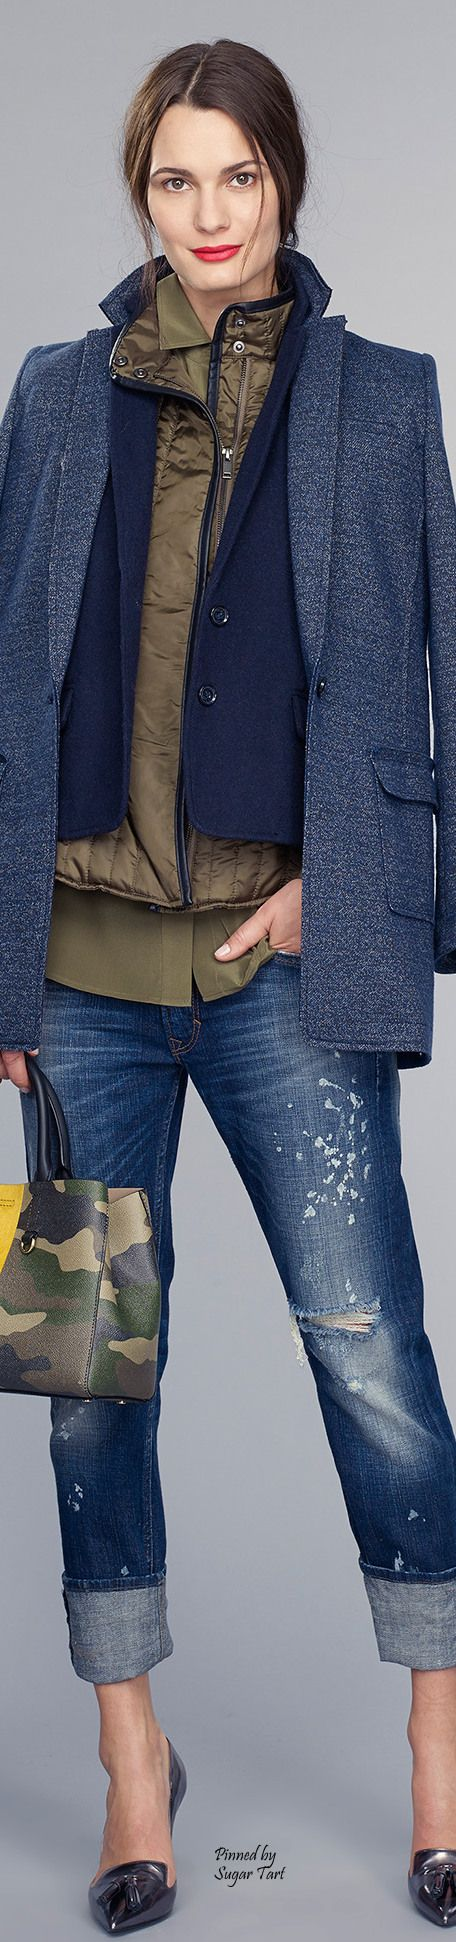 Banana Republic Fall 2015 | Smart Casual | Street Style |www.designerclothingfans.com